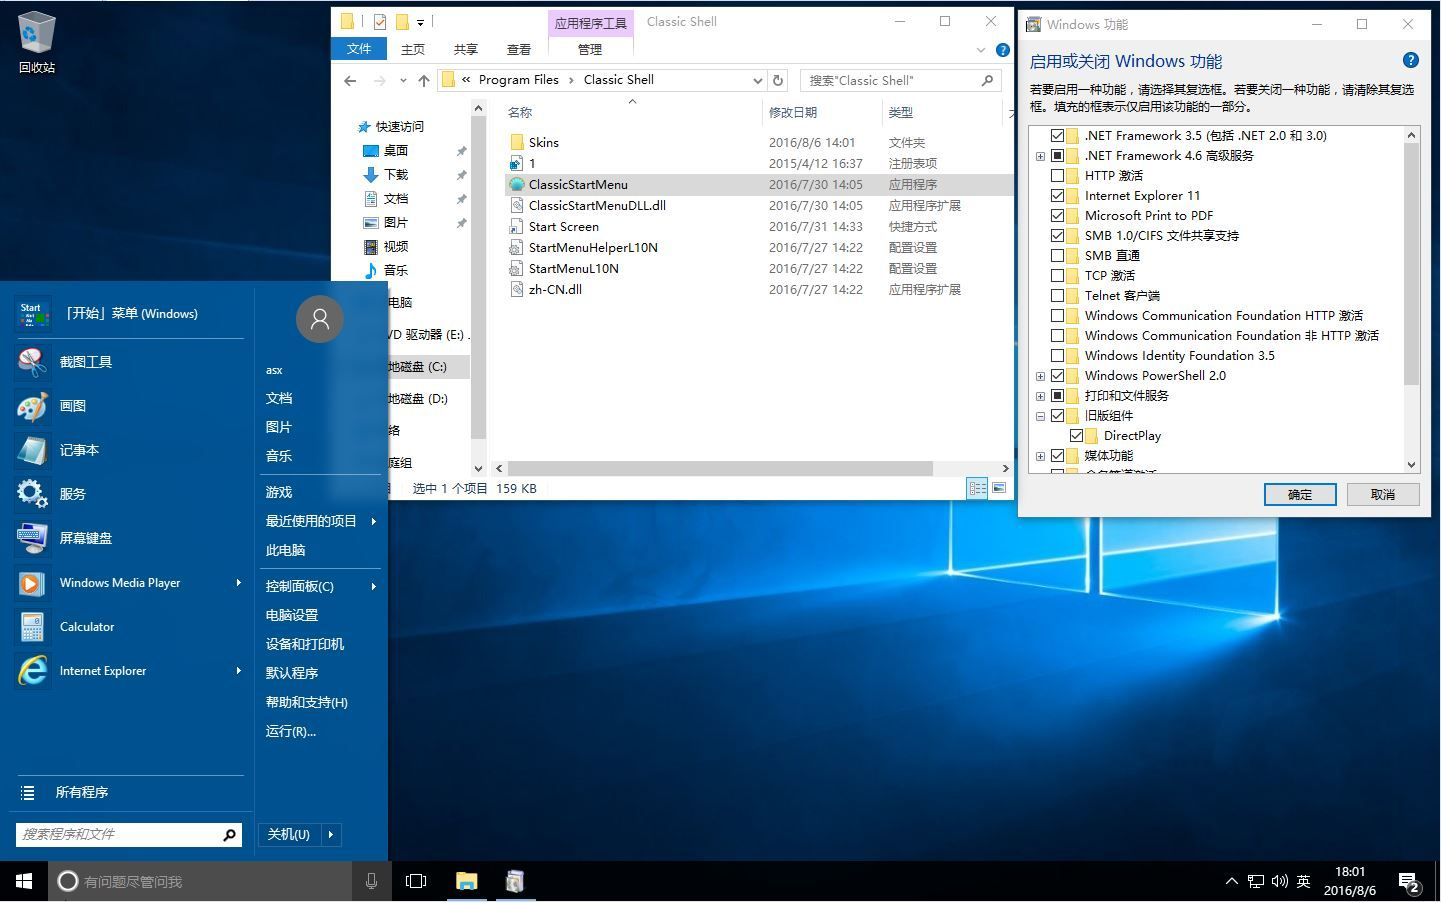 Windows 10 Enterprise 14393.51 x86-x64 zh-CN LITE 06